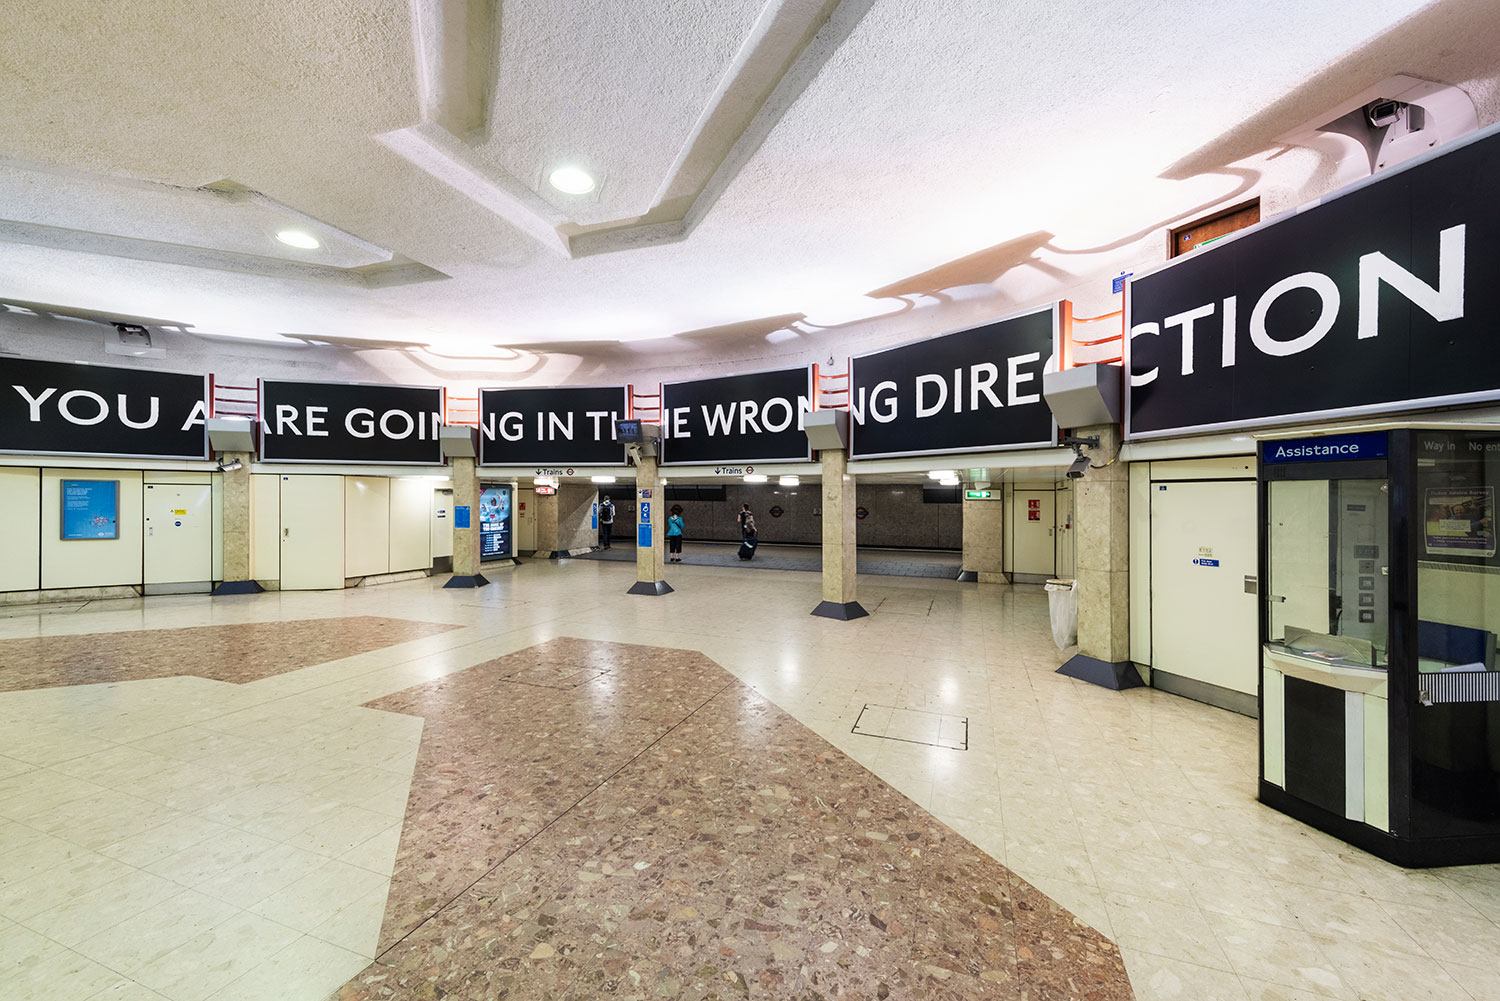 Laure Prouvost, You are deeper than what you think, Heathrow Terminal 4 station, 2019. Commissioned by Art on the Underground. images by Thierry Bal